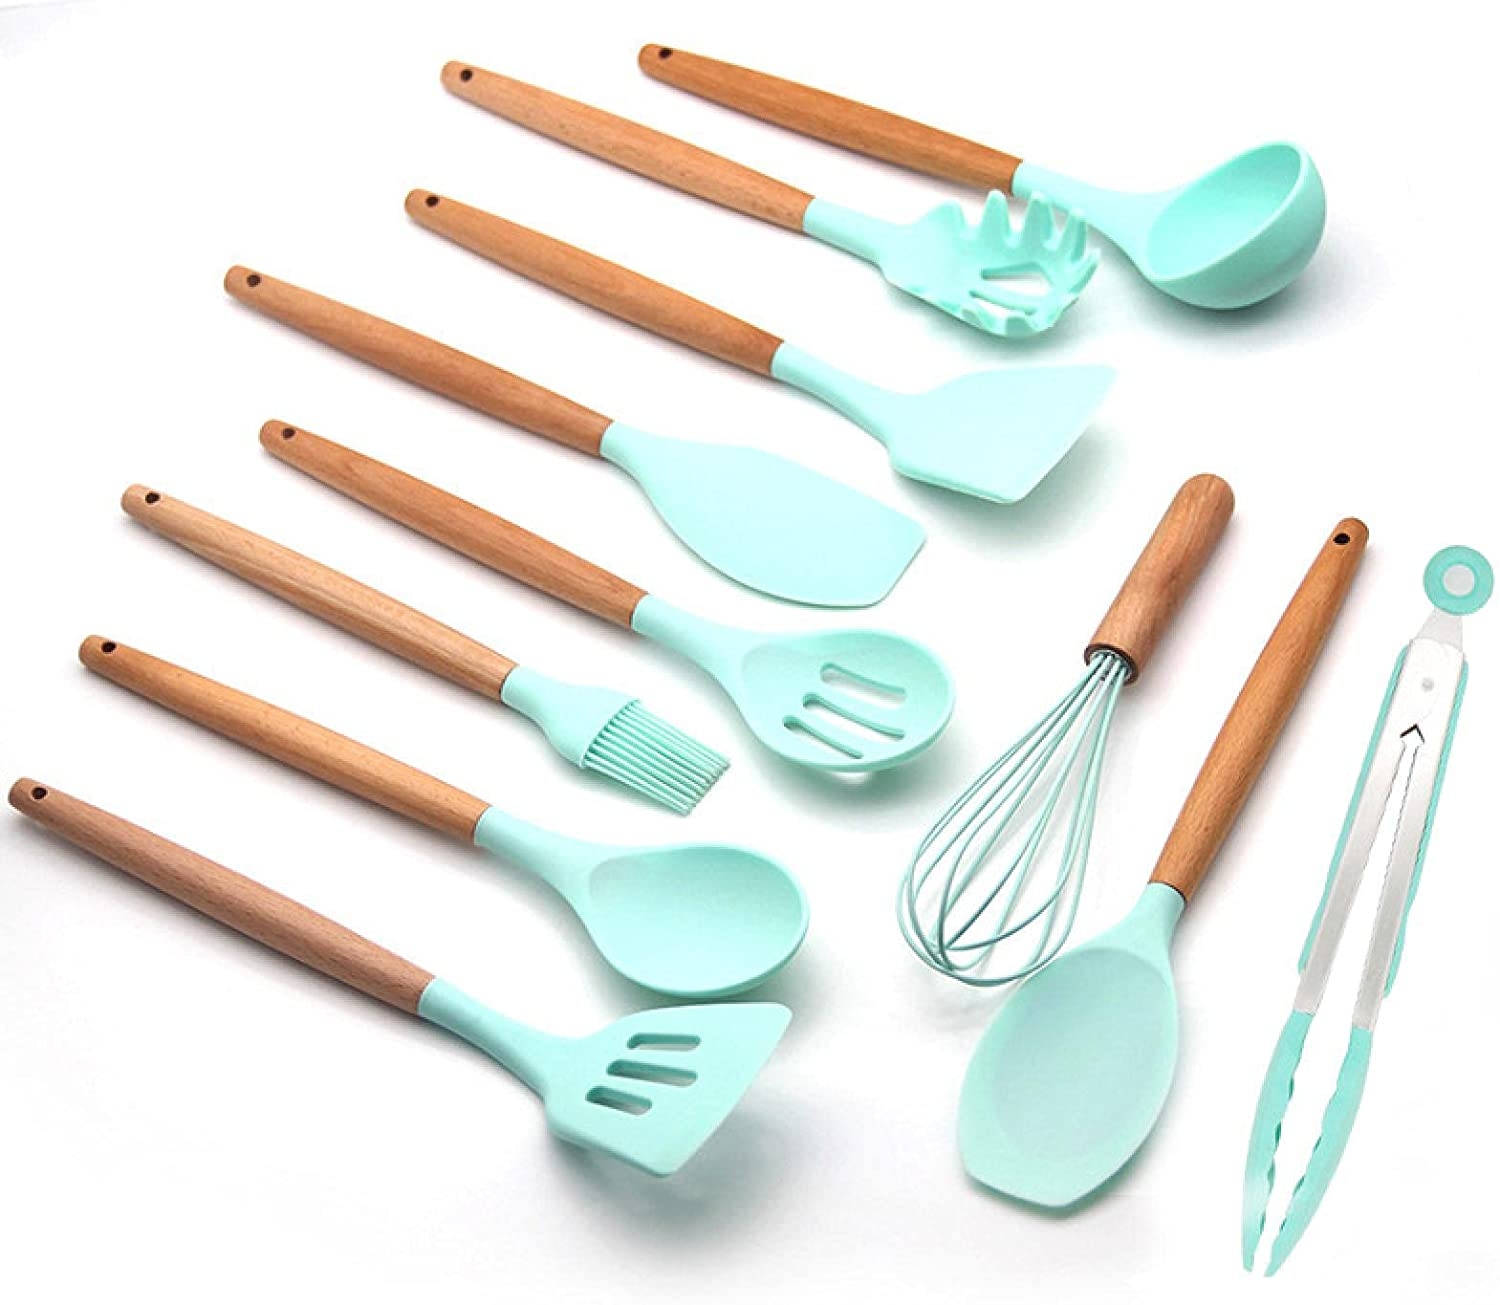 Mr. Peng 70% OFF Outlet Wooden Handle Piece kitchenware 12 mart Silicone